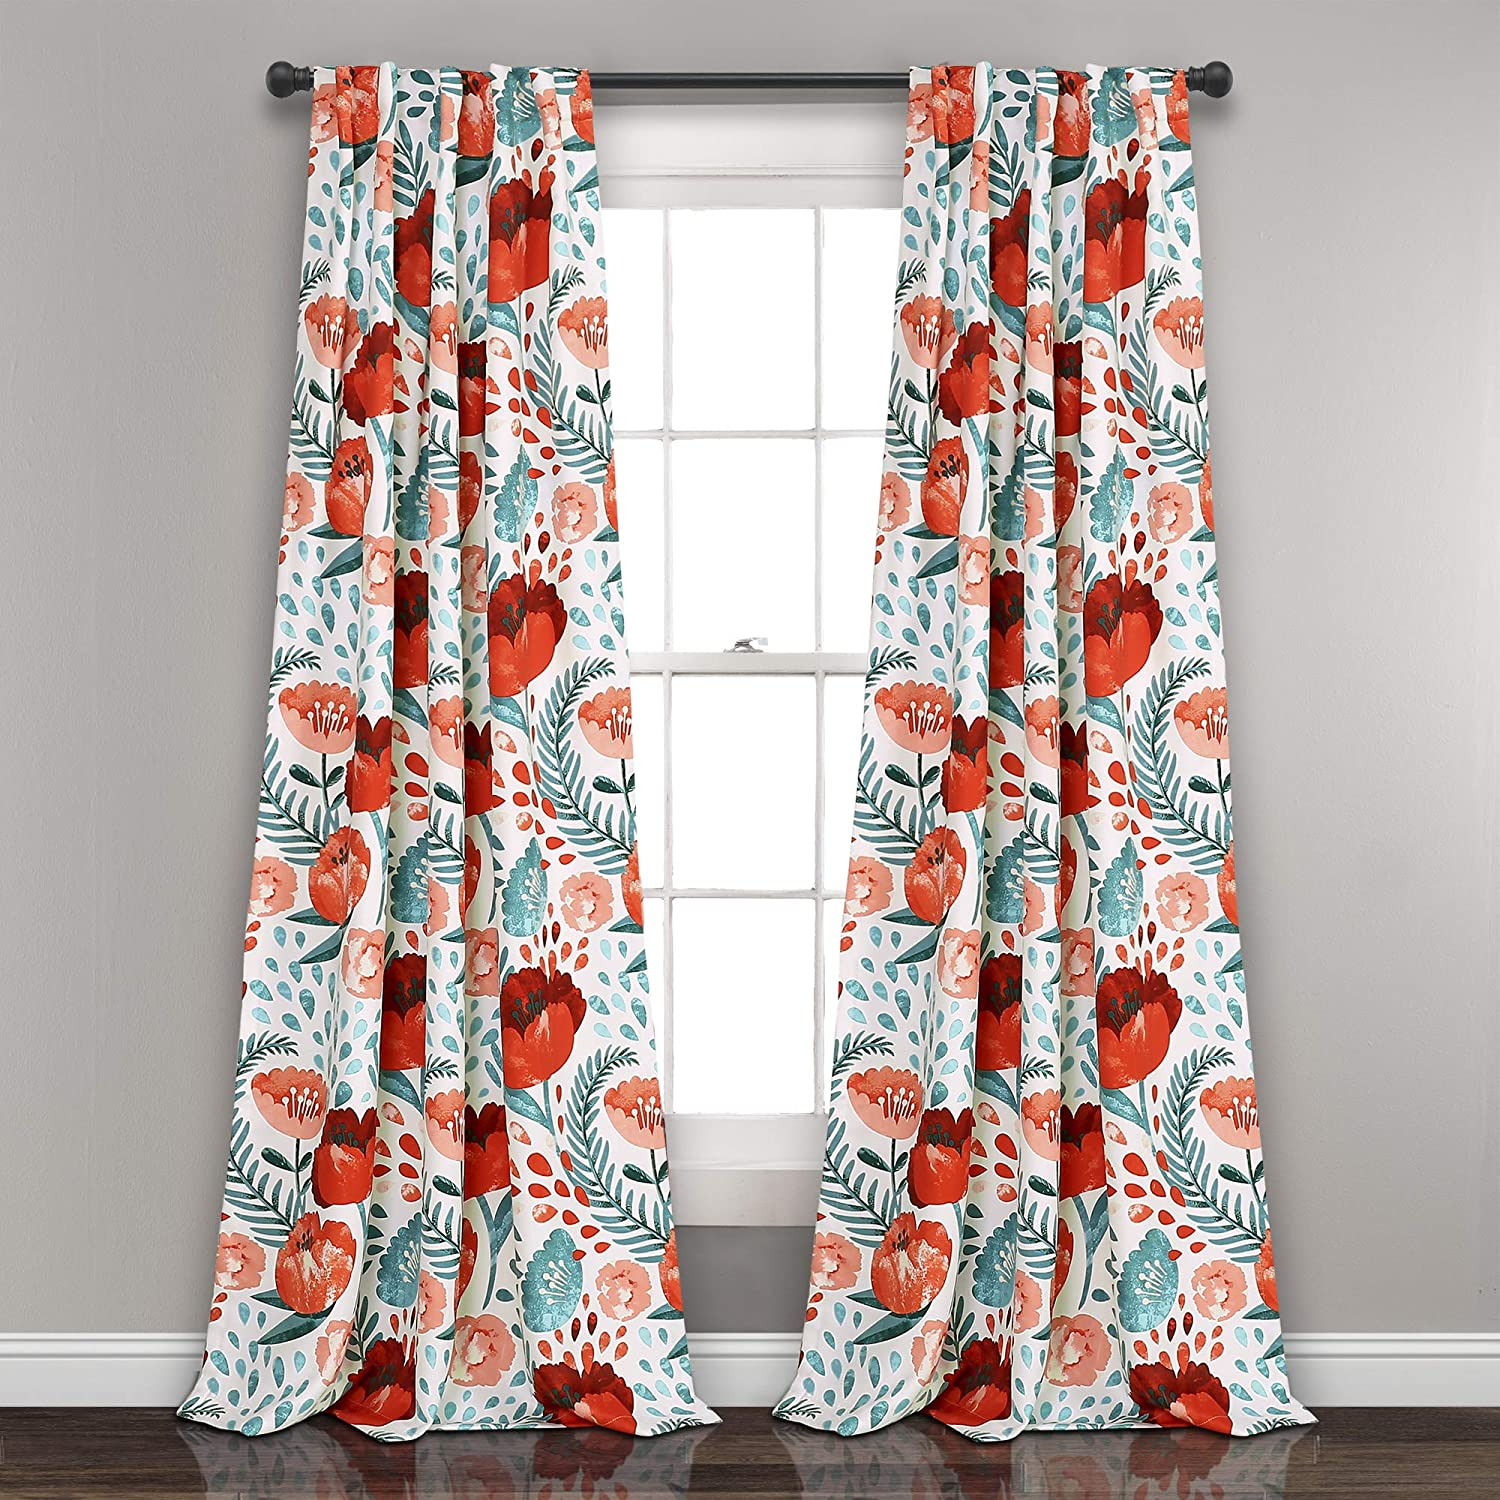 "Lush Decor Pair, 95"" x 52"", Multi Poppy Garden Curtains Room Darkening Window Panel Set for Living, Dining, Bedroom, 95"" L"